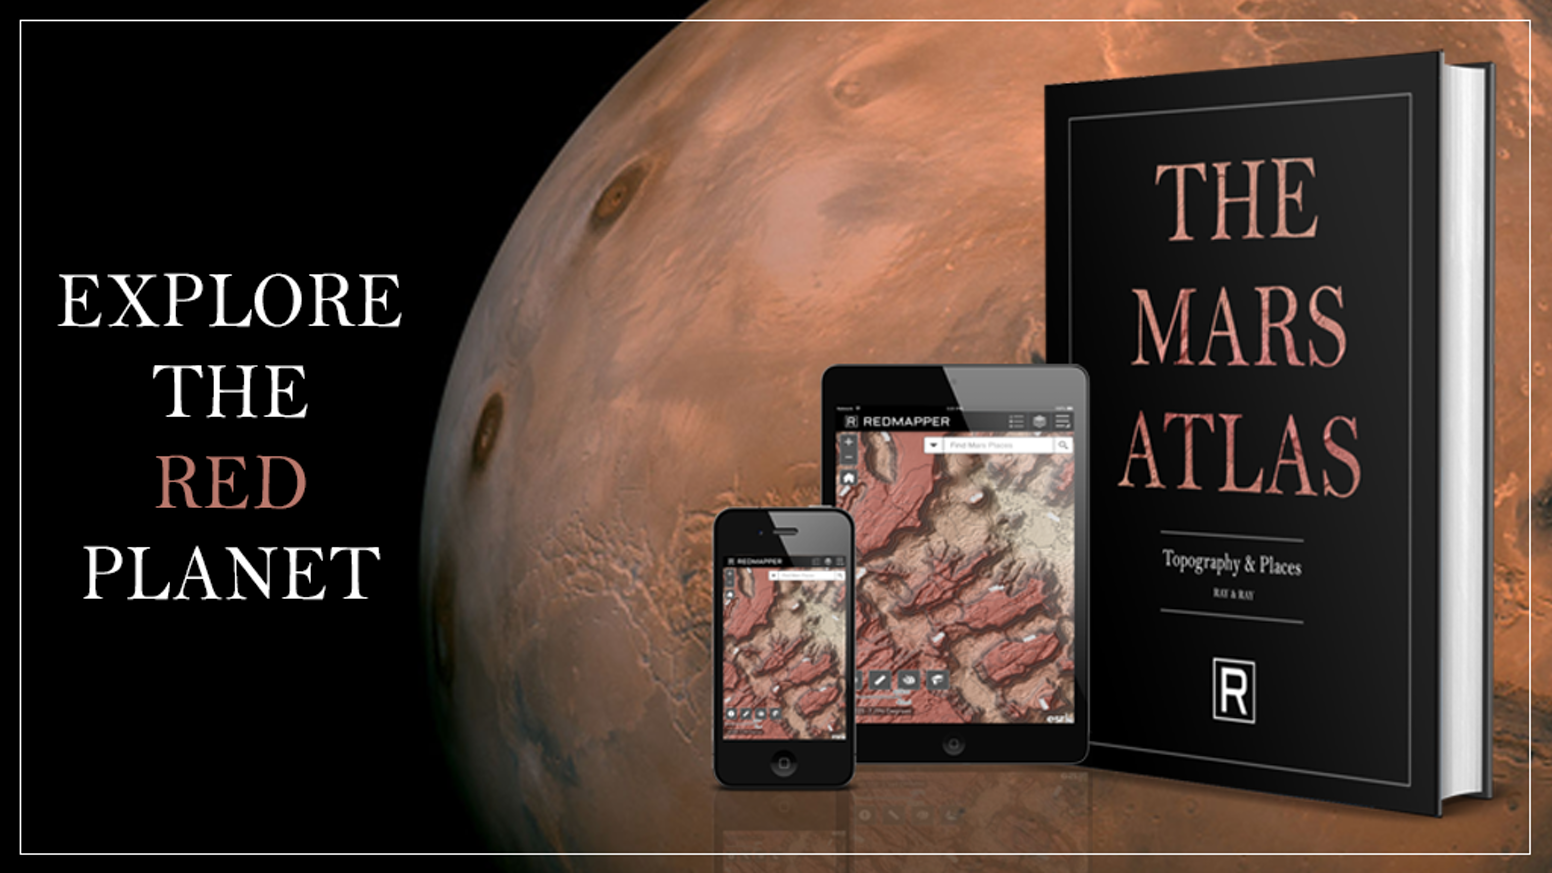 Explore the Red Planet with maps crafted by professional cartographers and visit our neighbor through The Mars Atlas & Mars Portal.